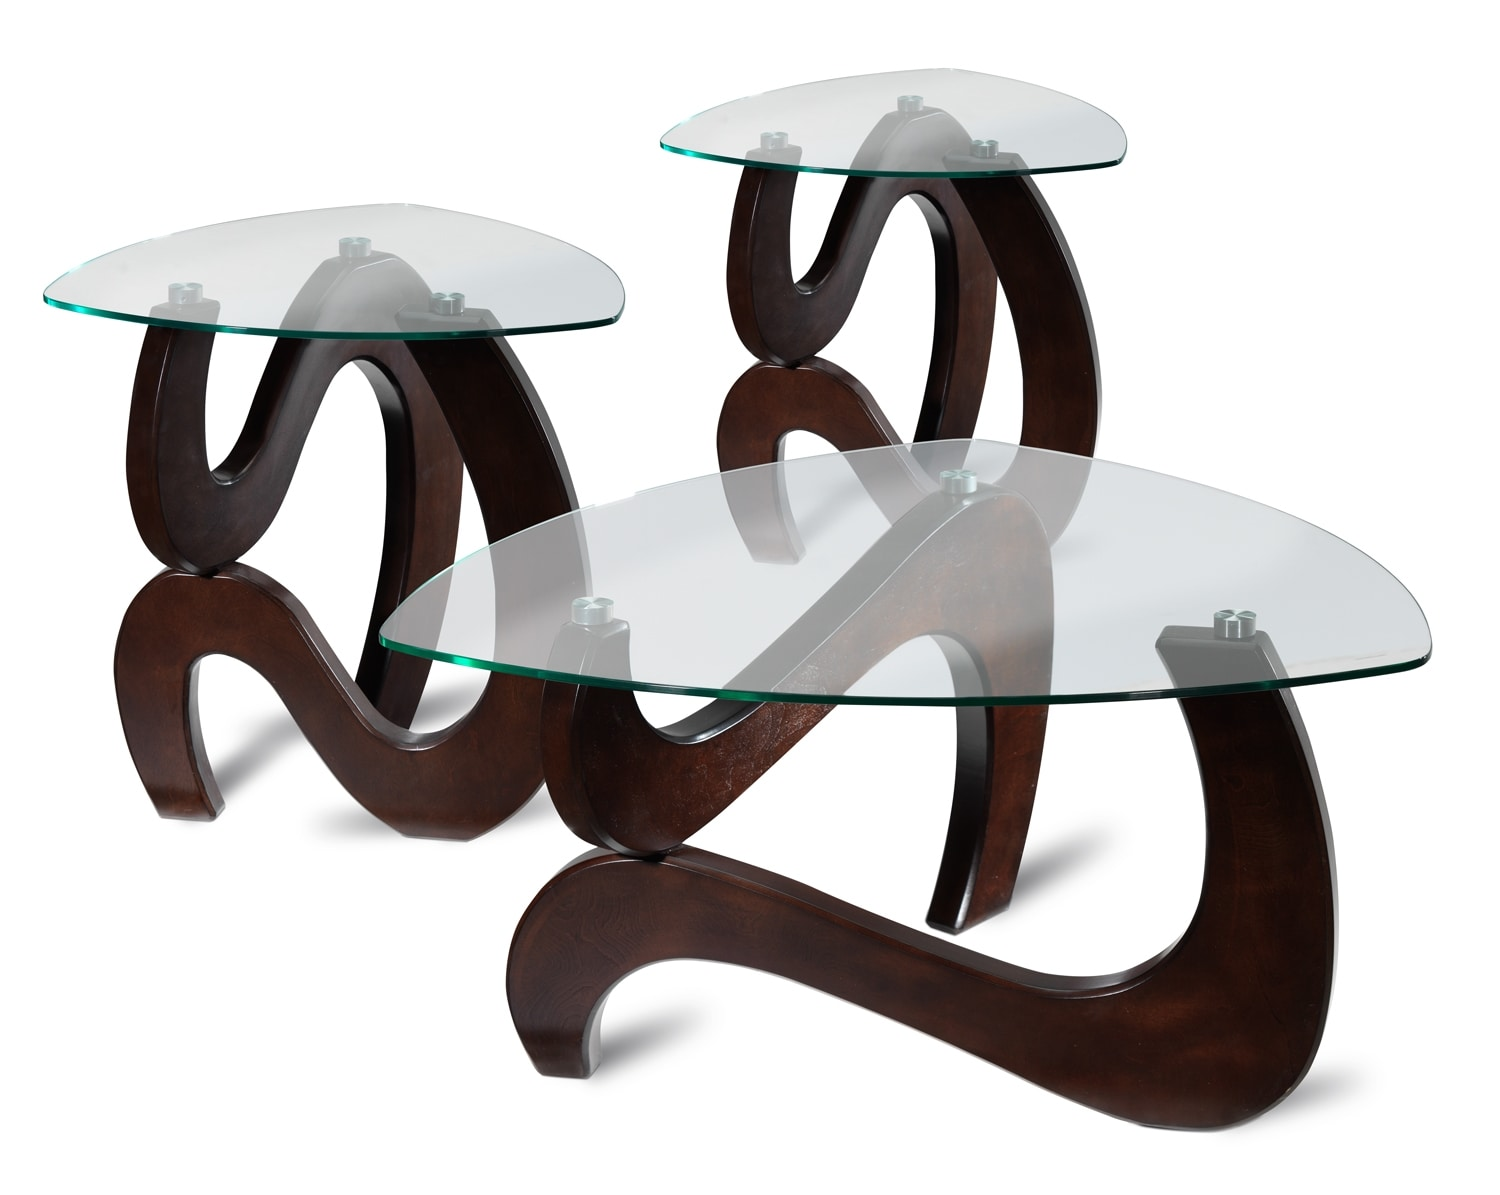 Vivian Ens. Table de centre et 2 tables de bout - expresso